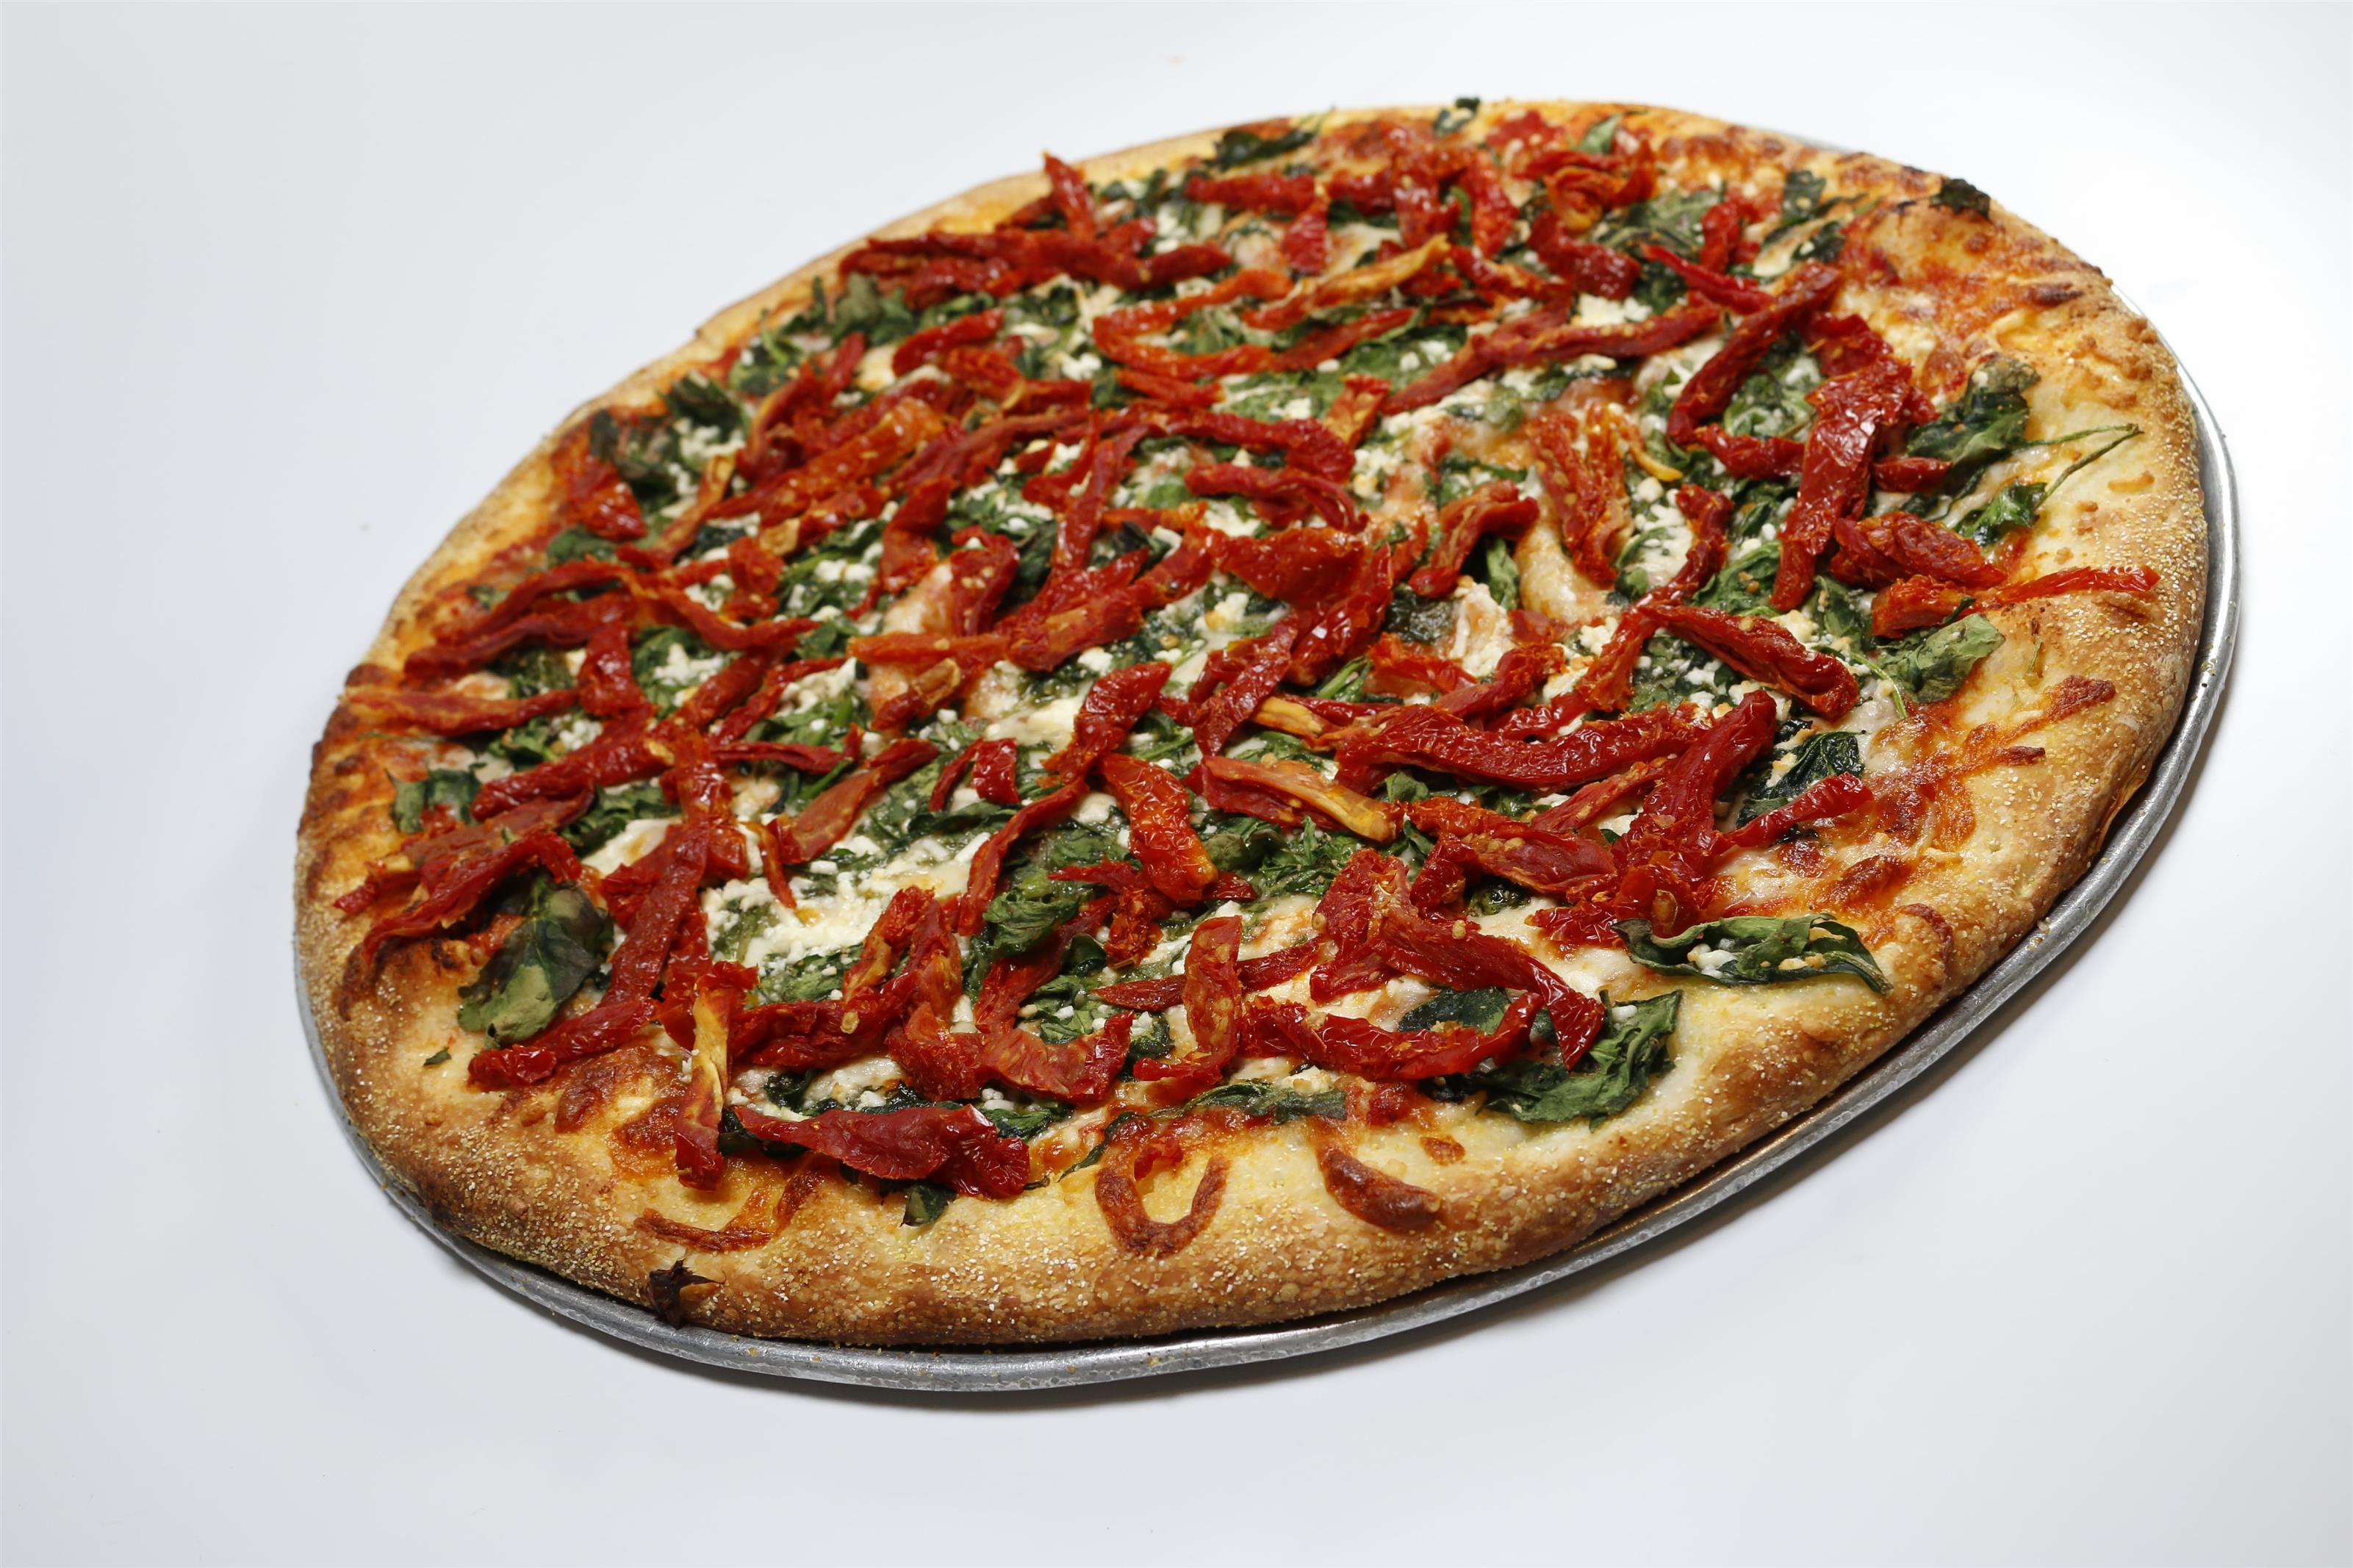 Margharita pizza with shredded red peppers, feta cheese, and shredded basil